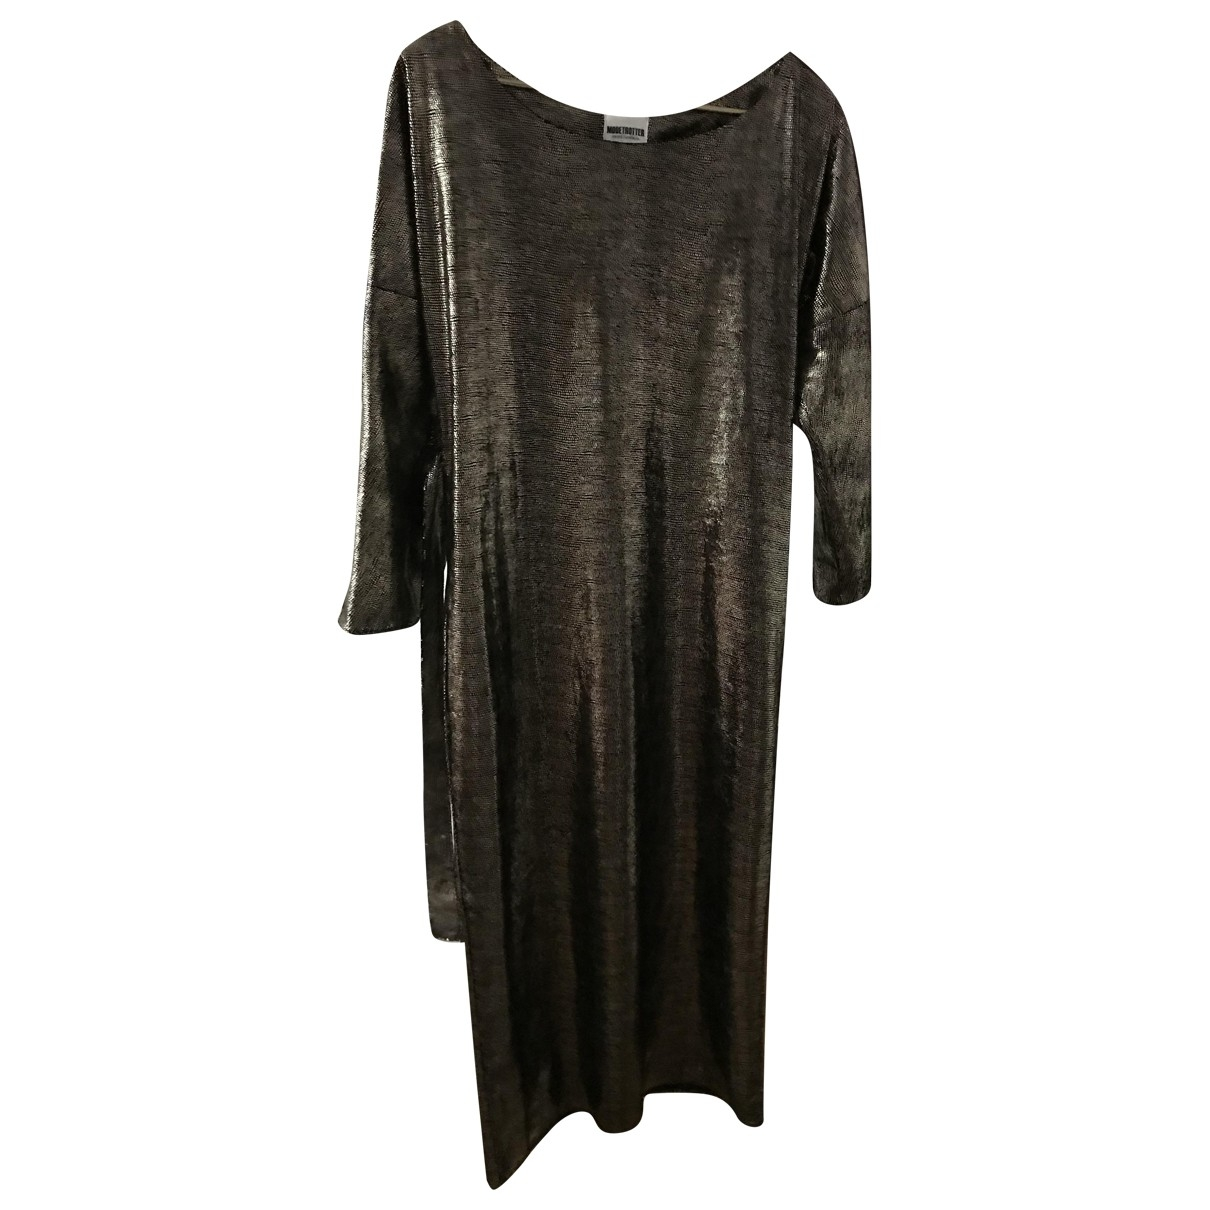 Modetrotter \N Gold dress for Women 34 FR